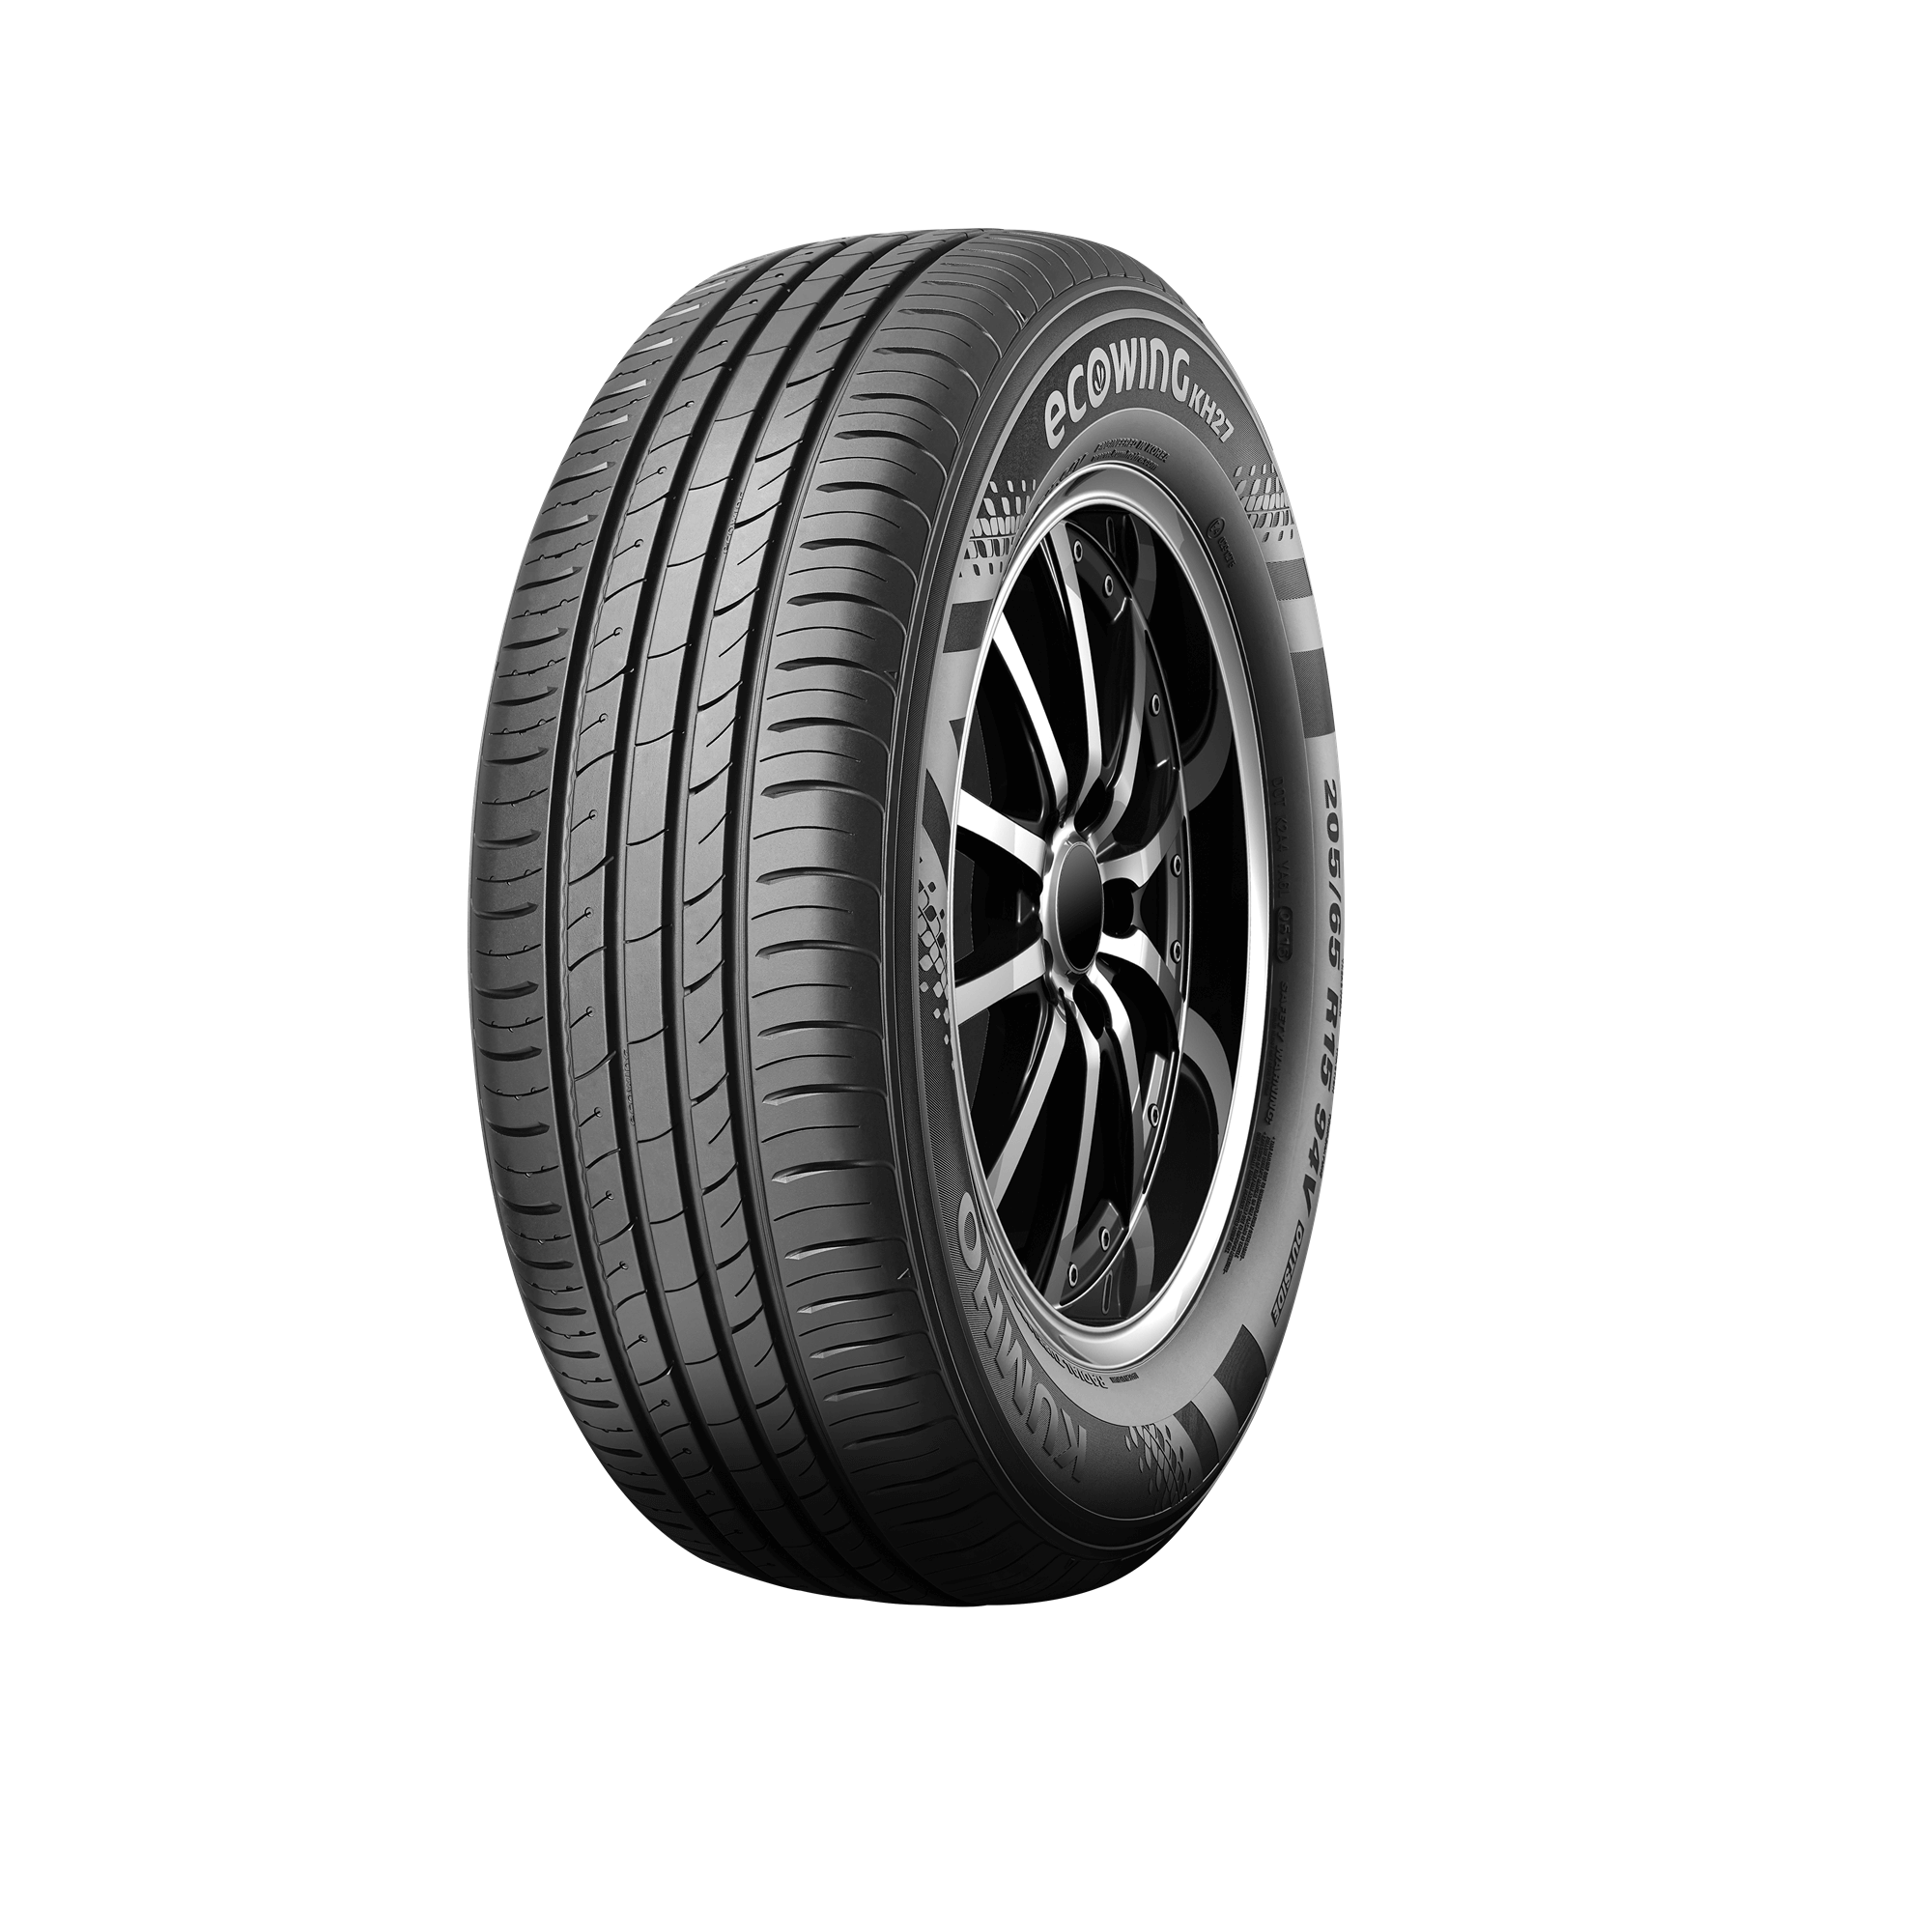 Kumho Ecowing KH27 175/70 R 14 Tubeless 84 H Car Tyre